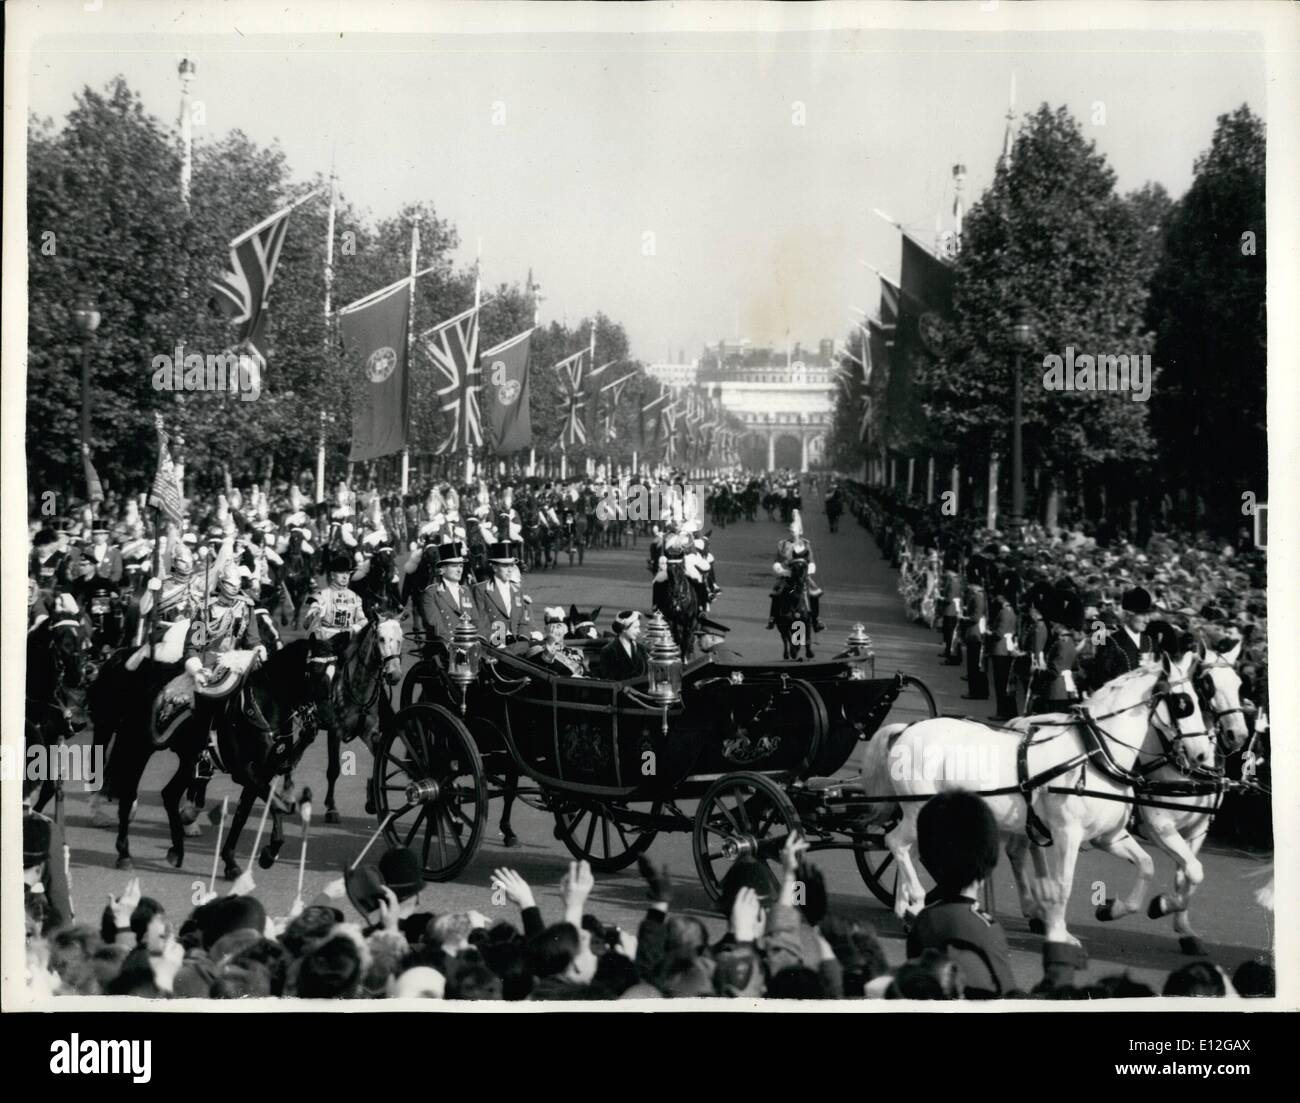 Dec. 26, 2011 - Virtugal Arrives I London Way to Palace - General View as the State Carriageing HM the Queen and President Lopes rounding the Queen Victoria Memorial Hall the Palace this afternoon. - Stock Image